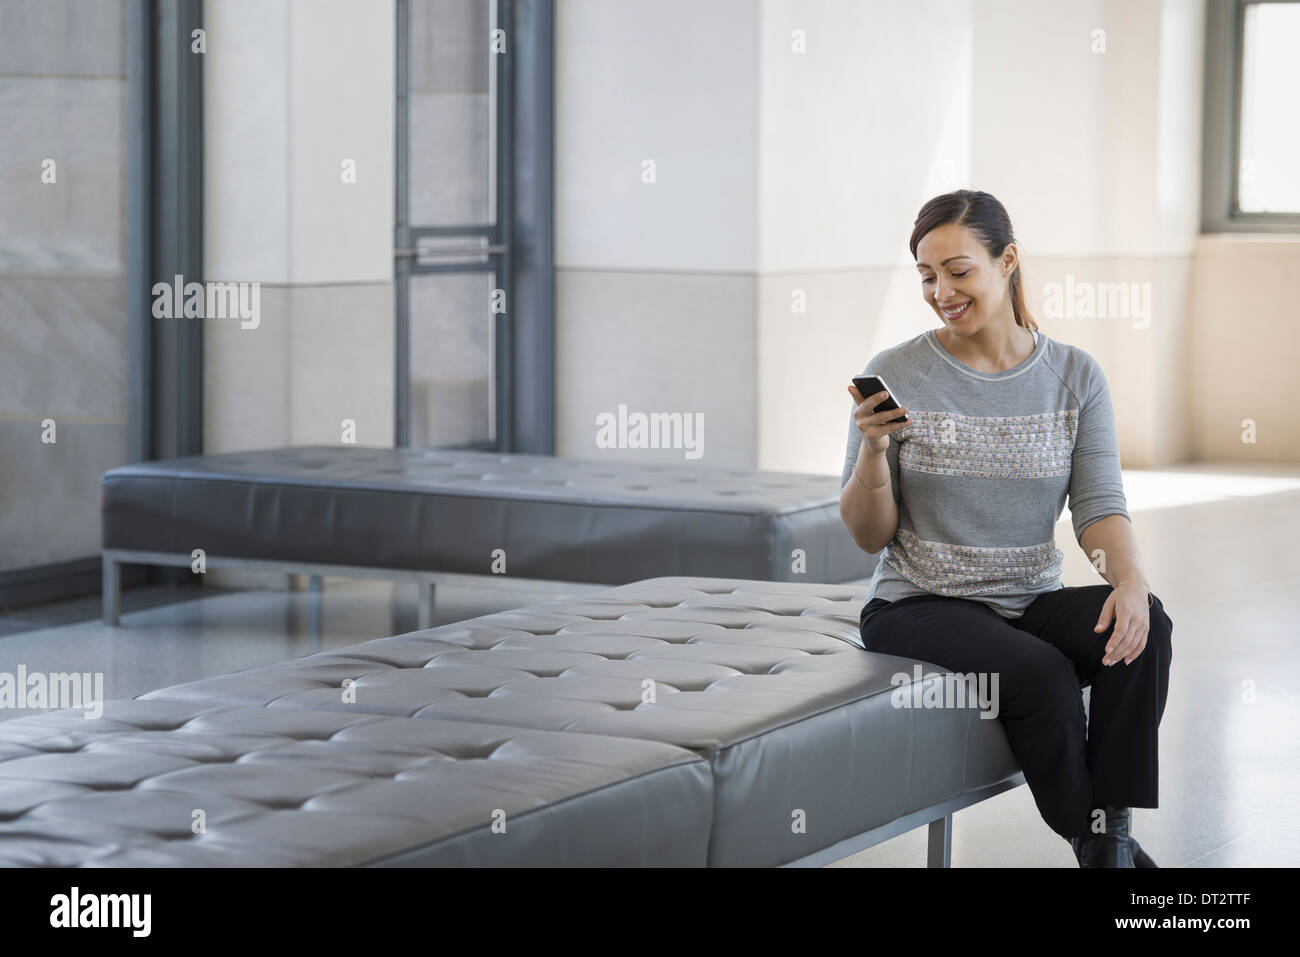 Urban Lifestyle A young woman sitting on a seat in a building using her mobile phone - Stock Image